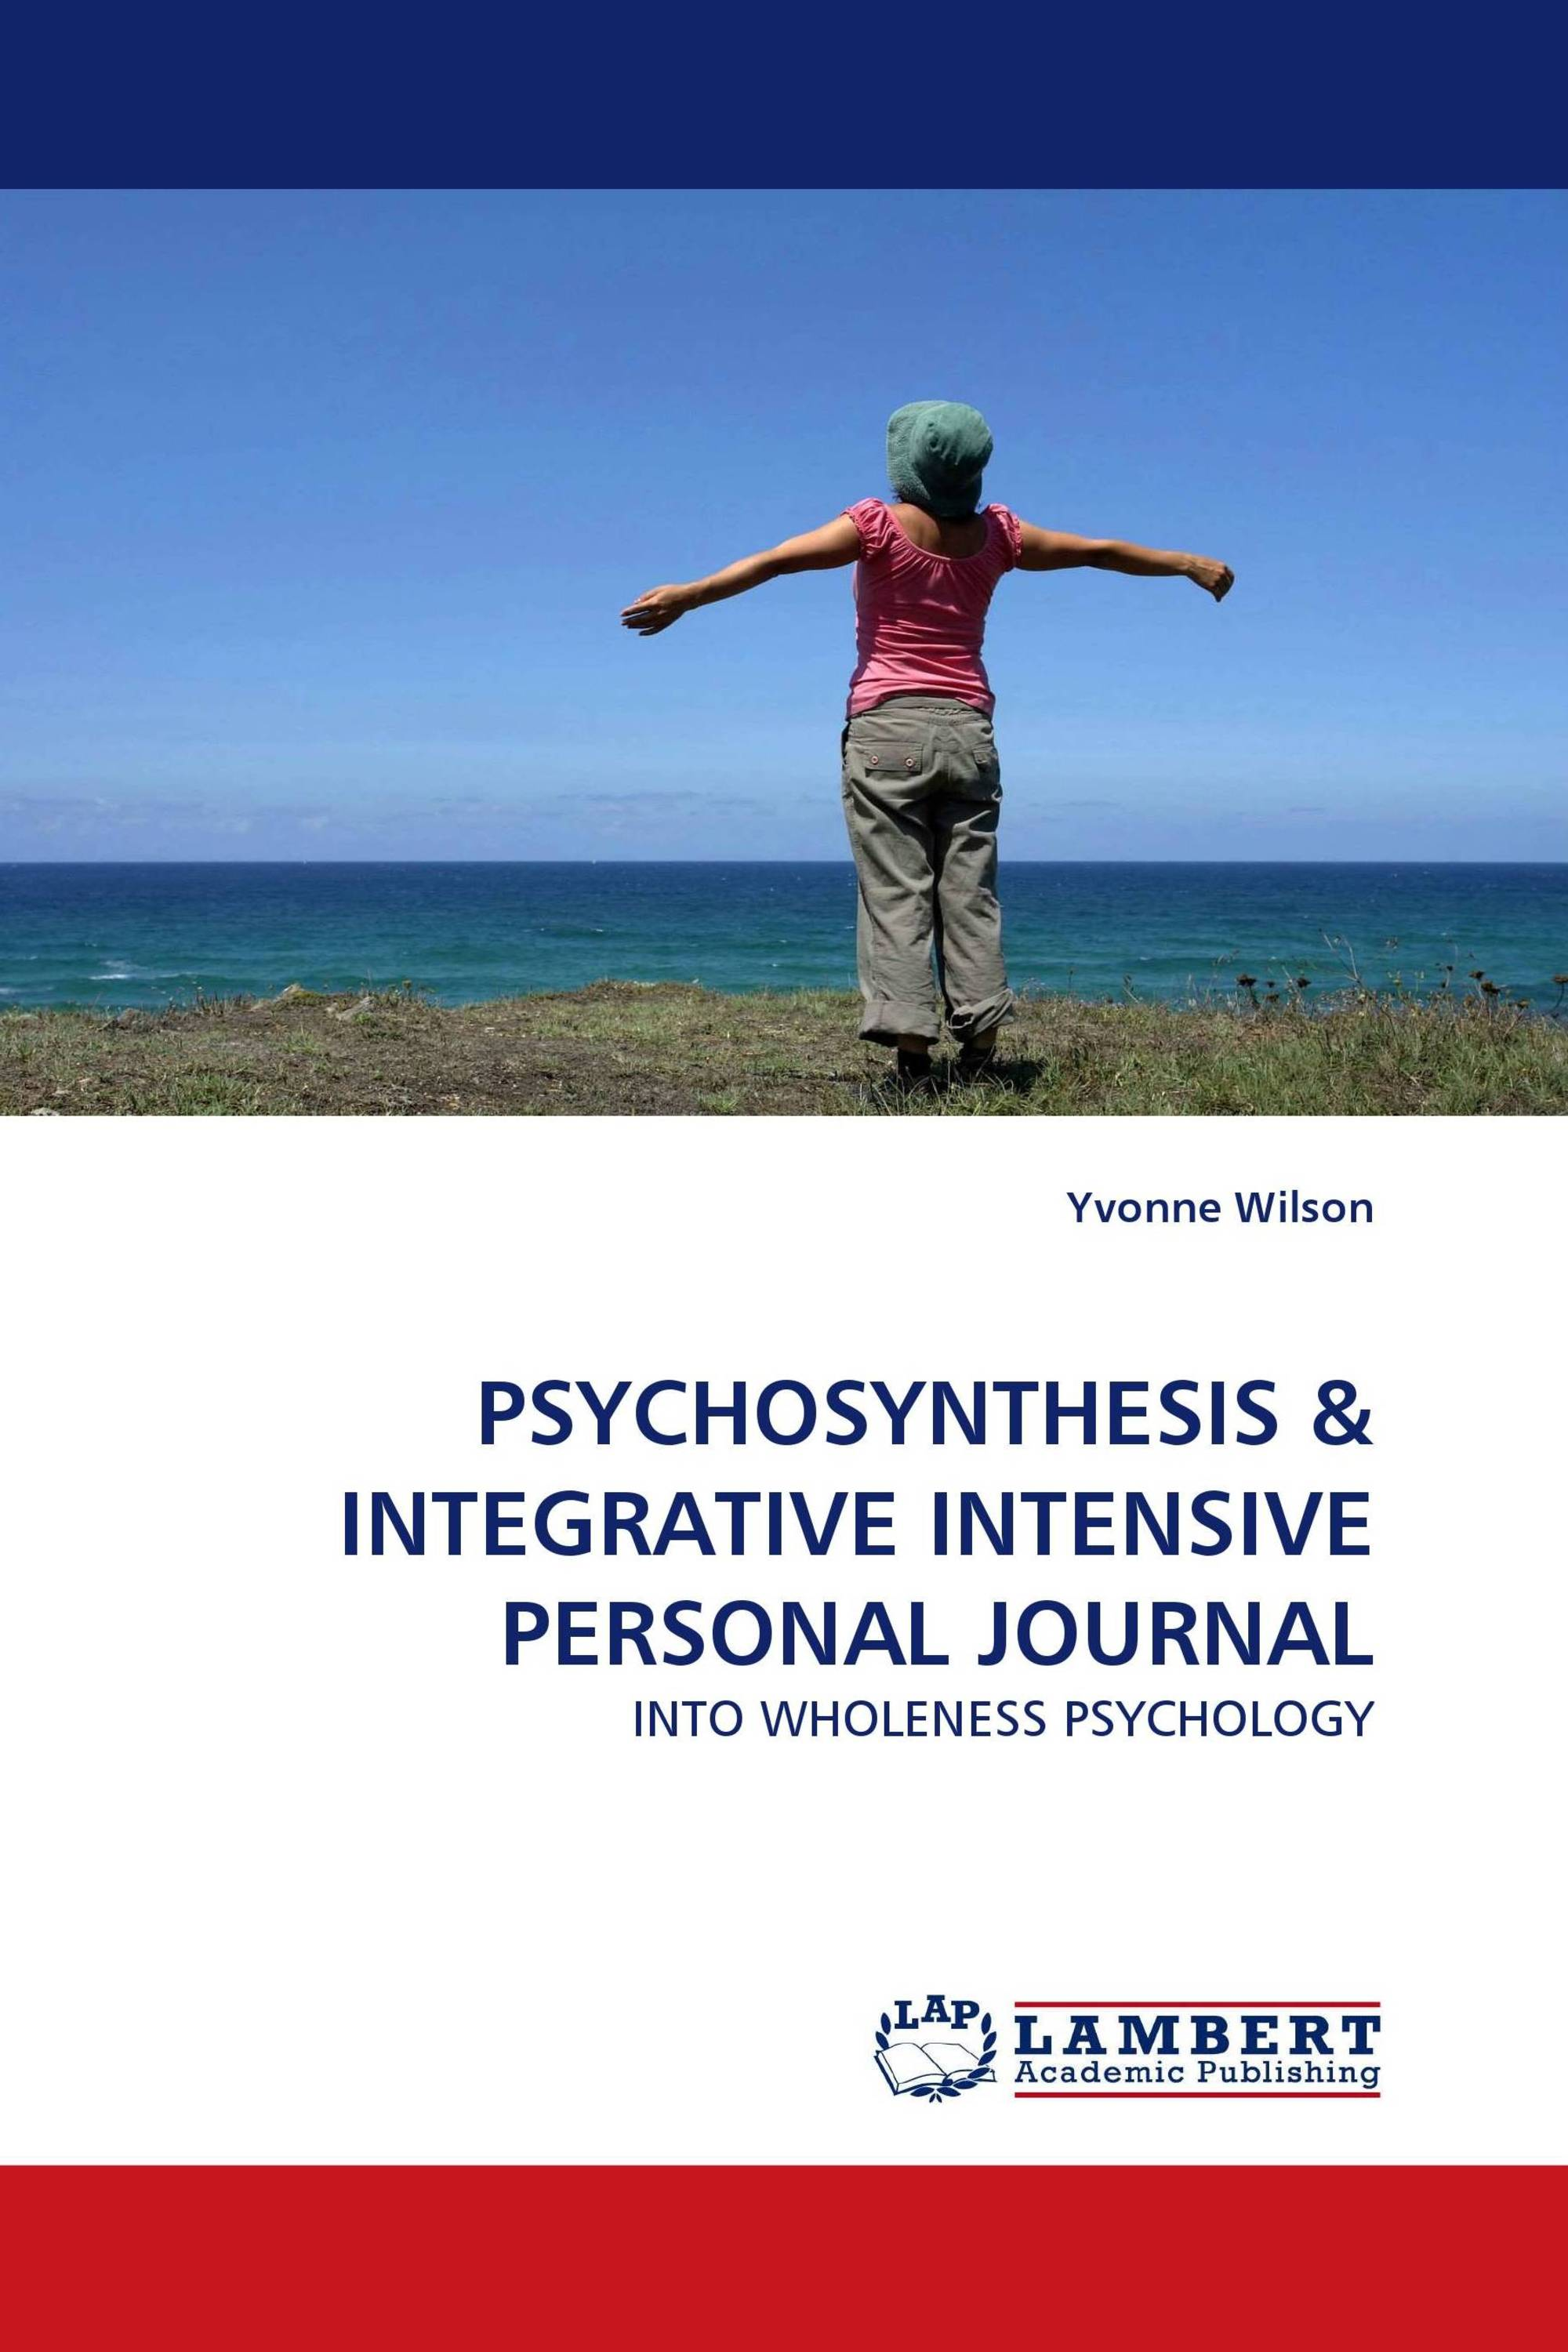 PSYCHOSYNTHESIS